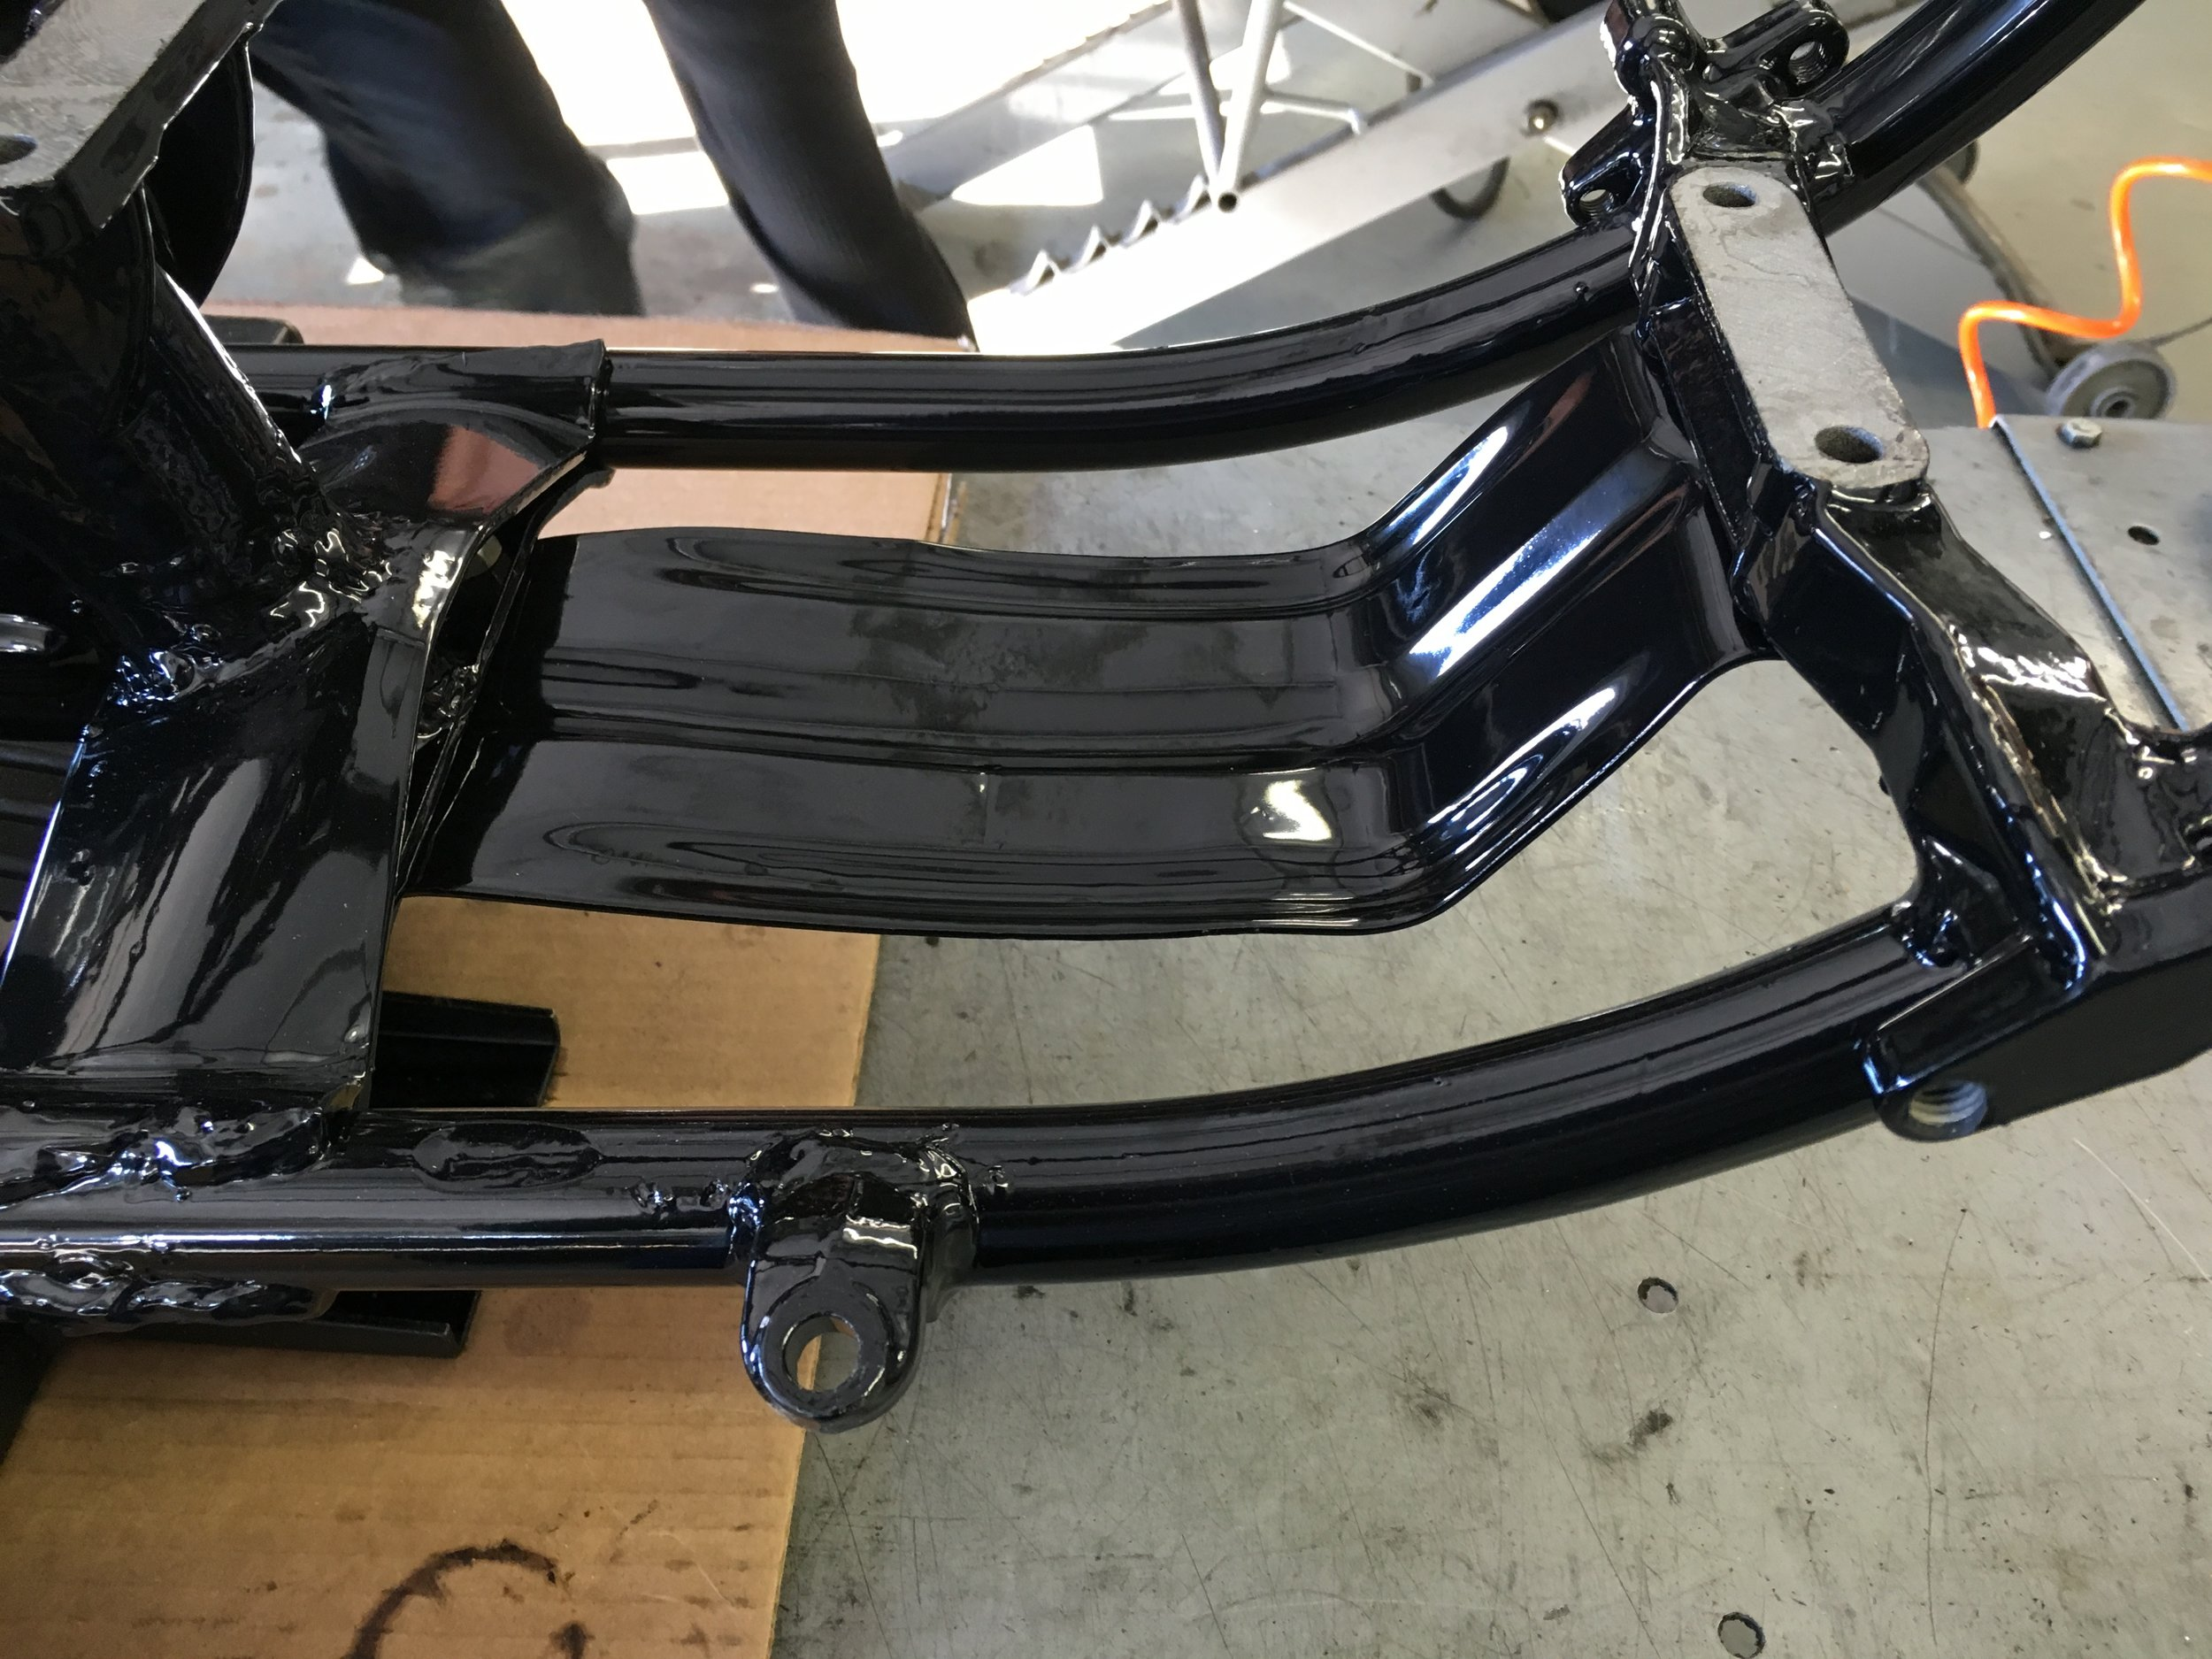 SWEET (AND CLEAN!) SKID PLATE - POWDER COATING BY WESTERN SANDBLASTING